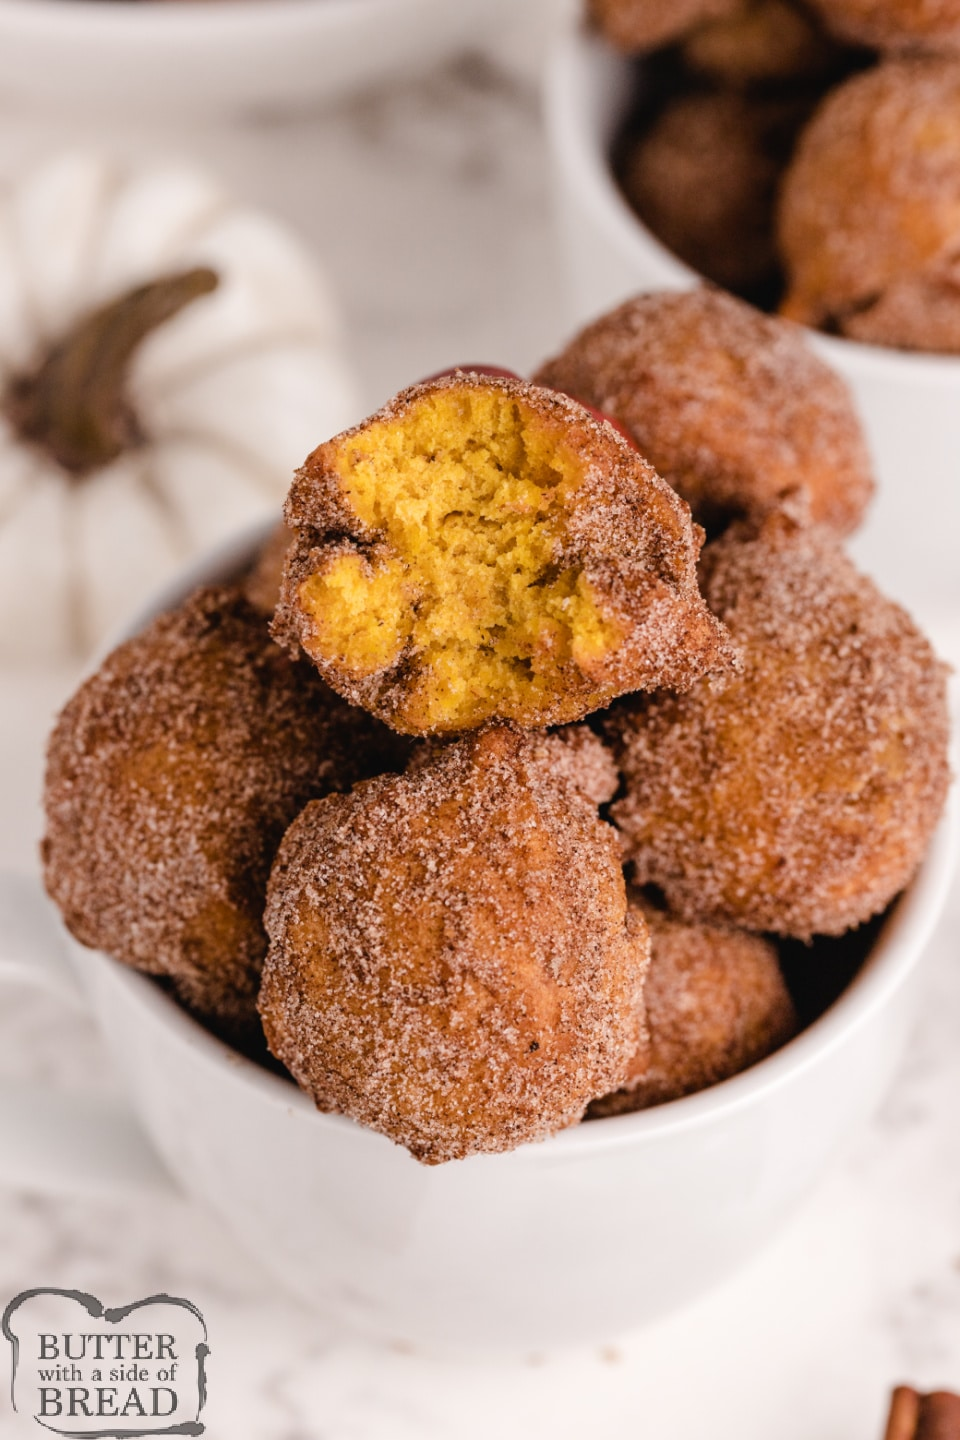 Pumpkin Donut Holes are soft, delicious and easy to make - no yeast necessary! Coated in cinnamon and sugar, and packed with pumpkin, this donut hole recipe is perfect for fall!